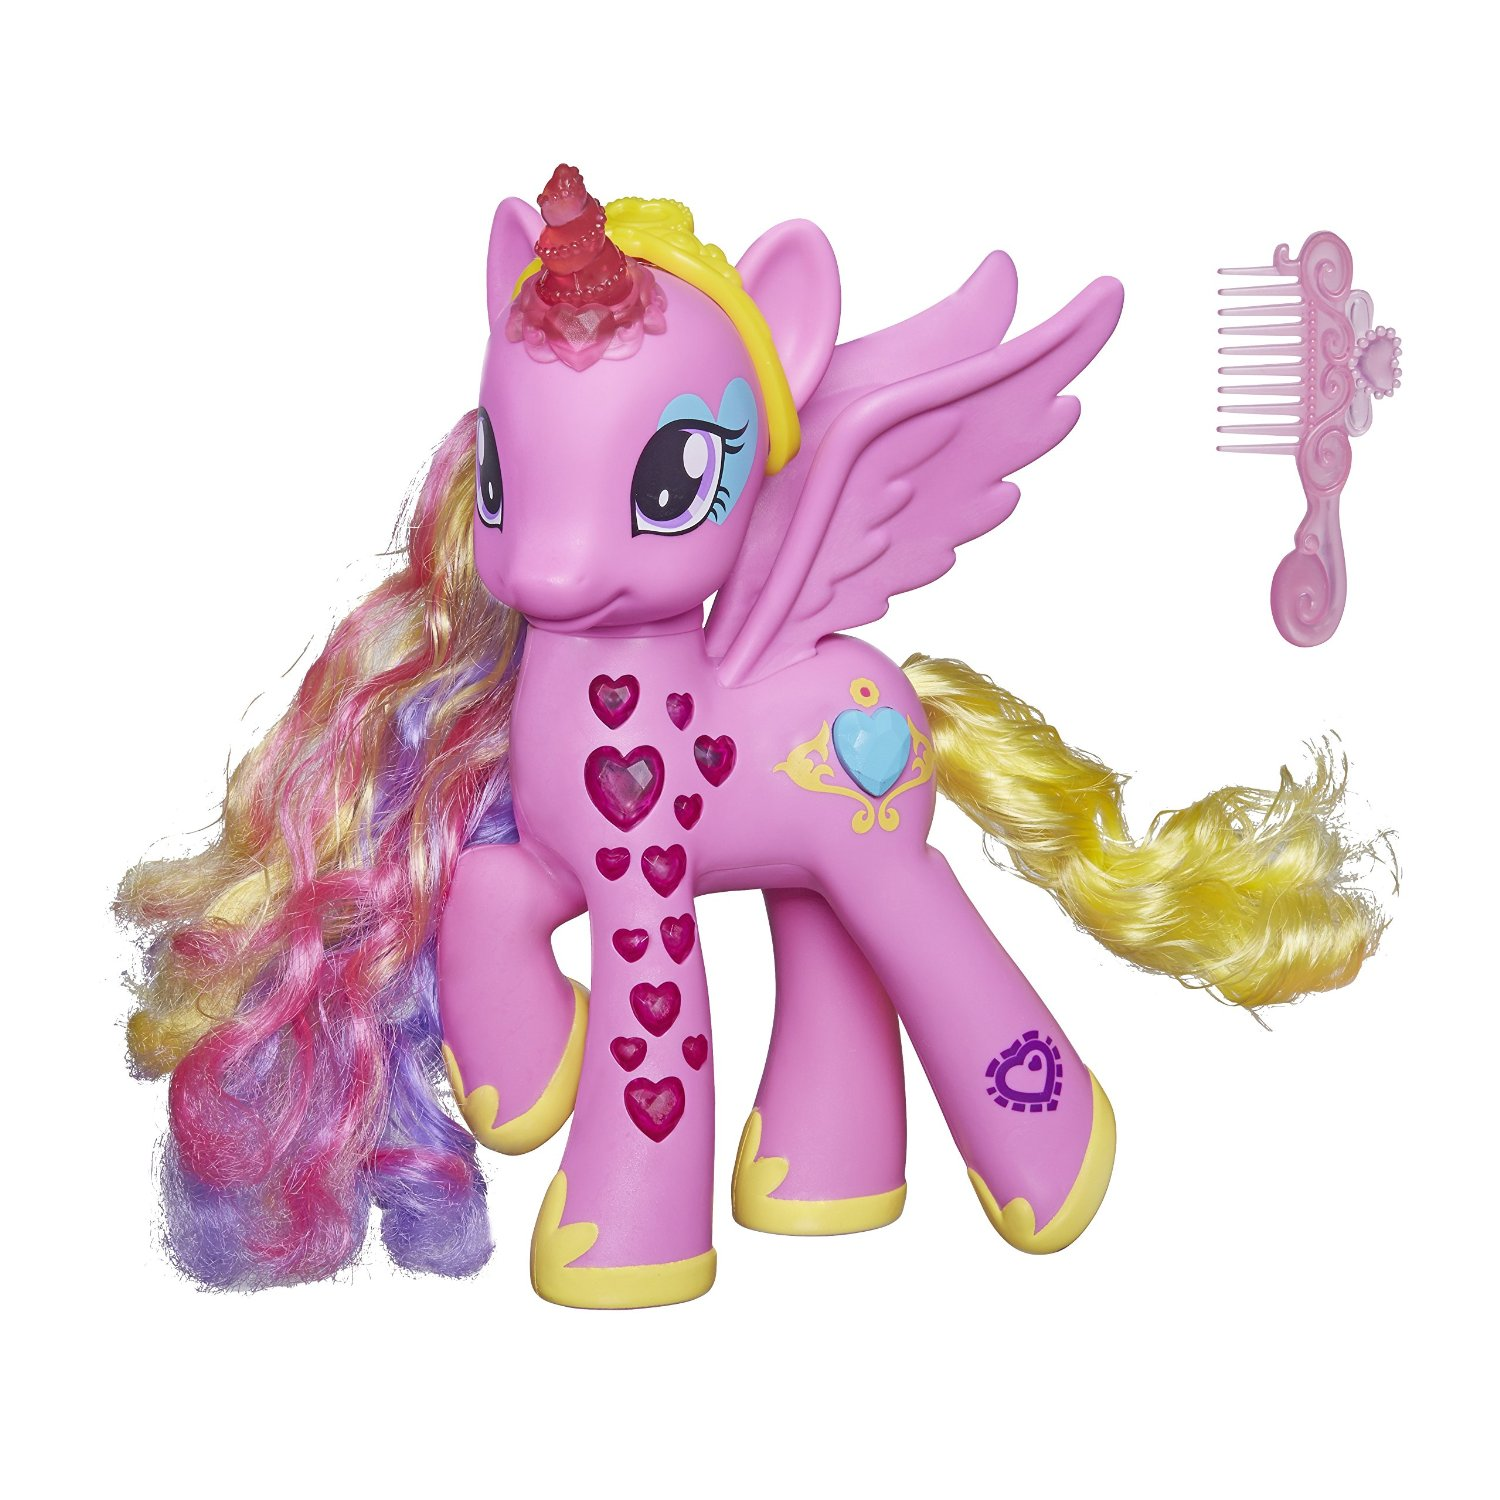 Glowing Hearts Princess Cadance Now On Amazon UK Website